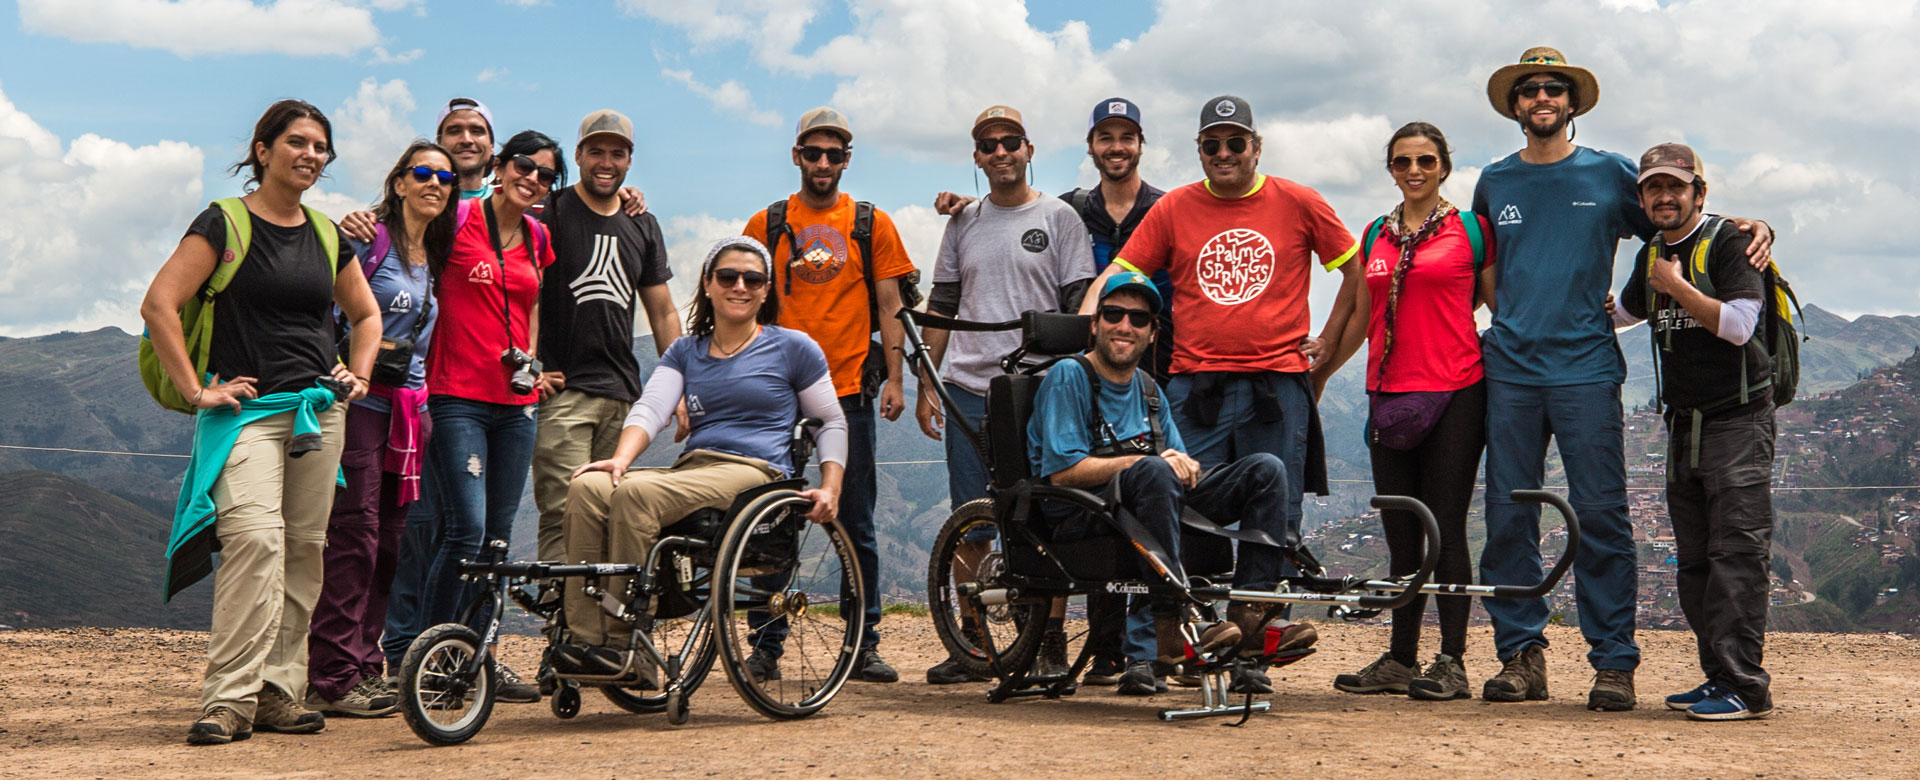 Alvaro Silberstein: Quadriplegic Adventure Travel Entrepreneur